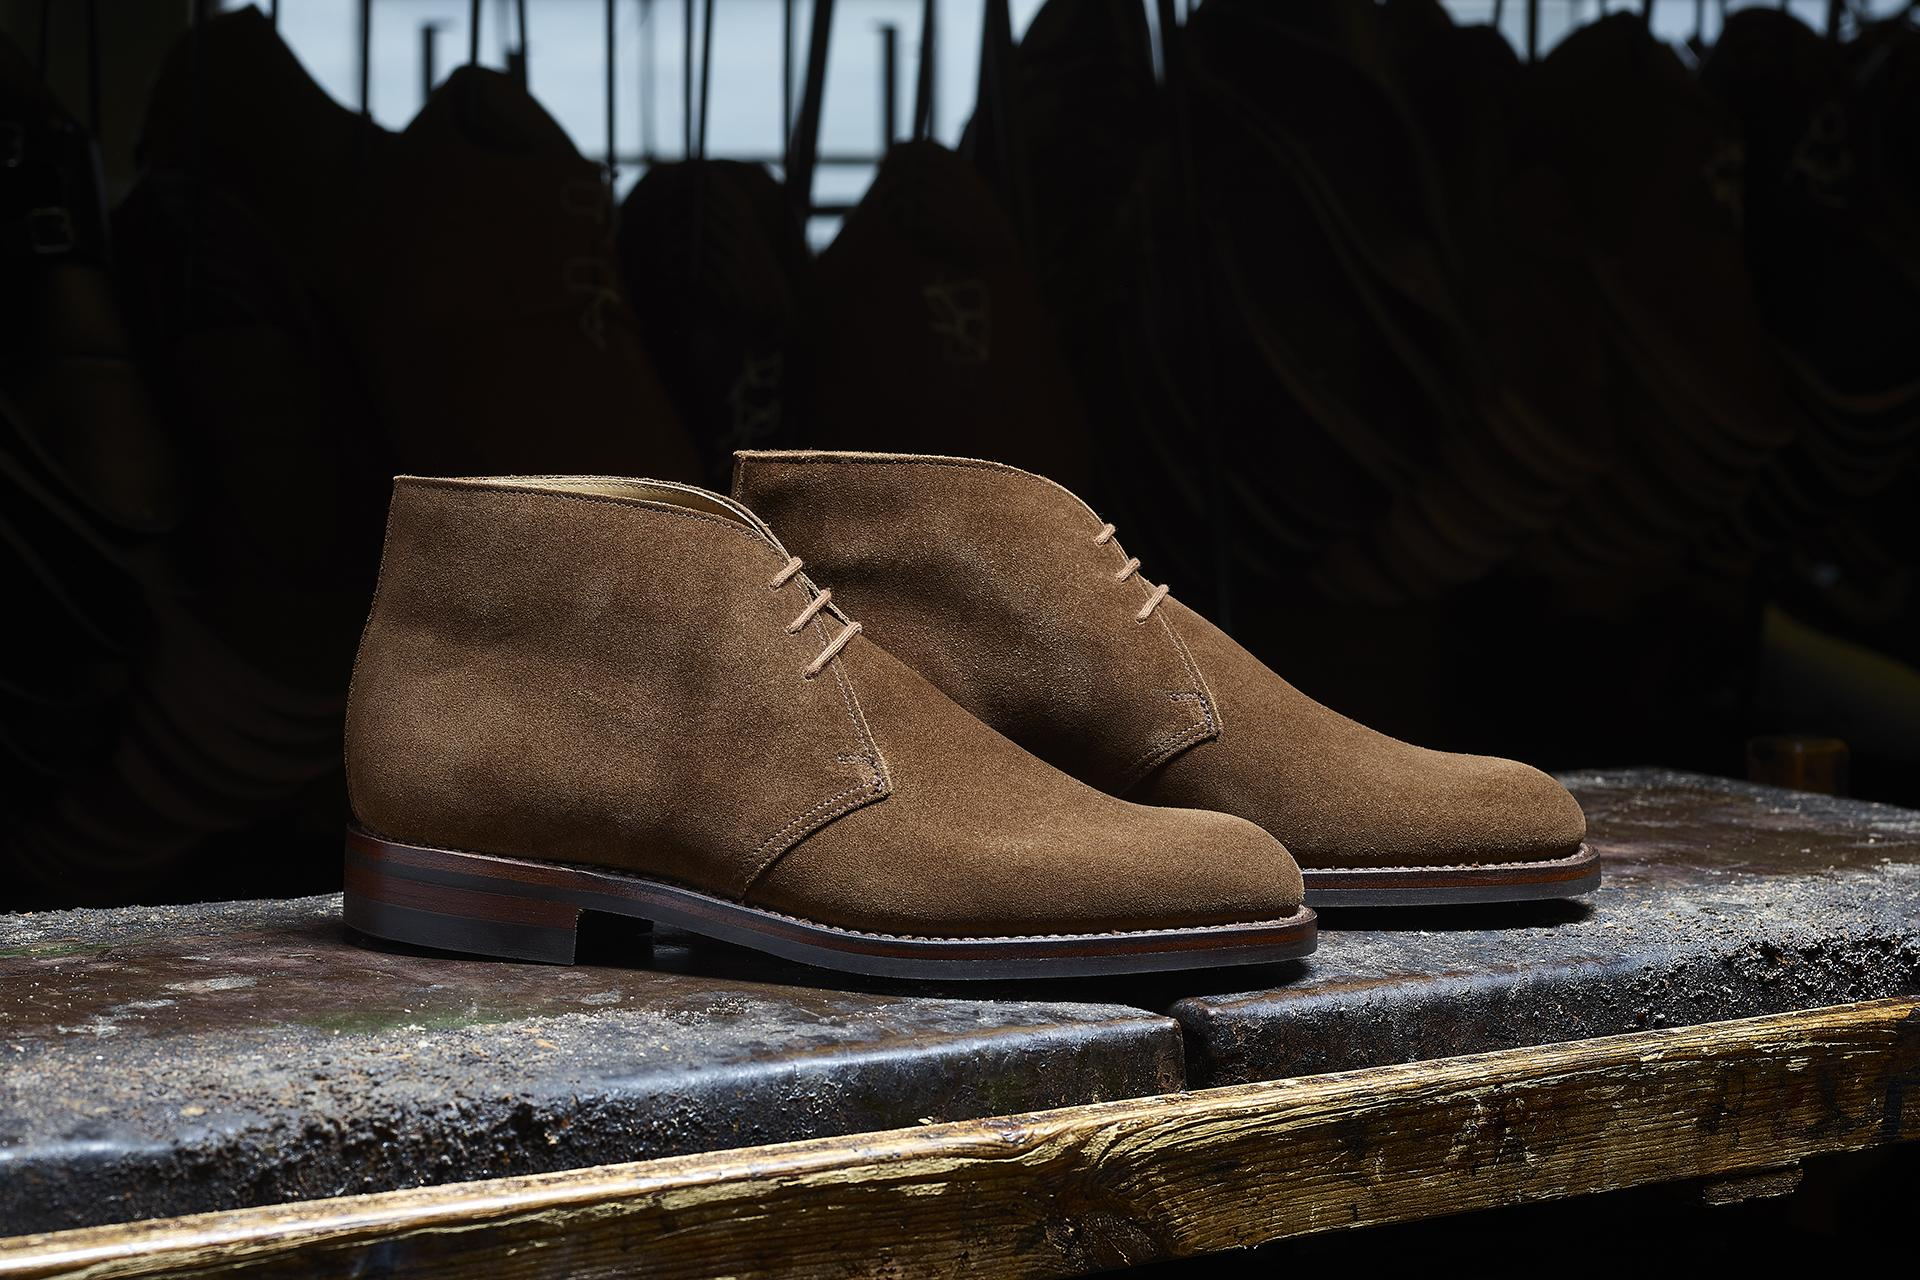 Crockett & Jones – Chukka boot